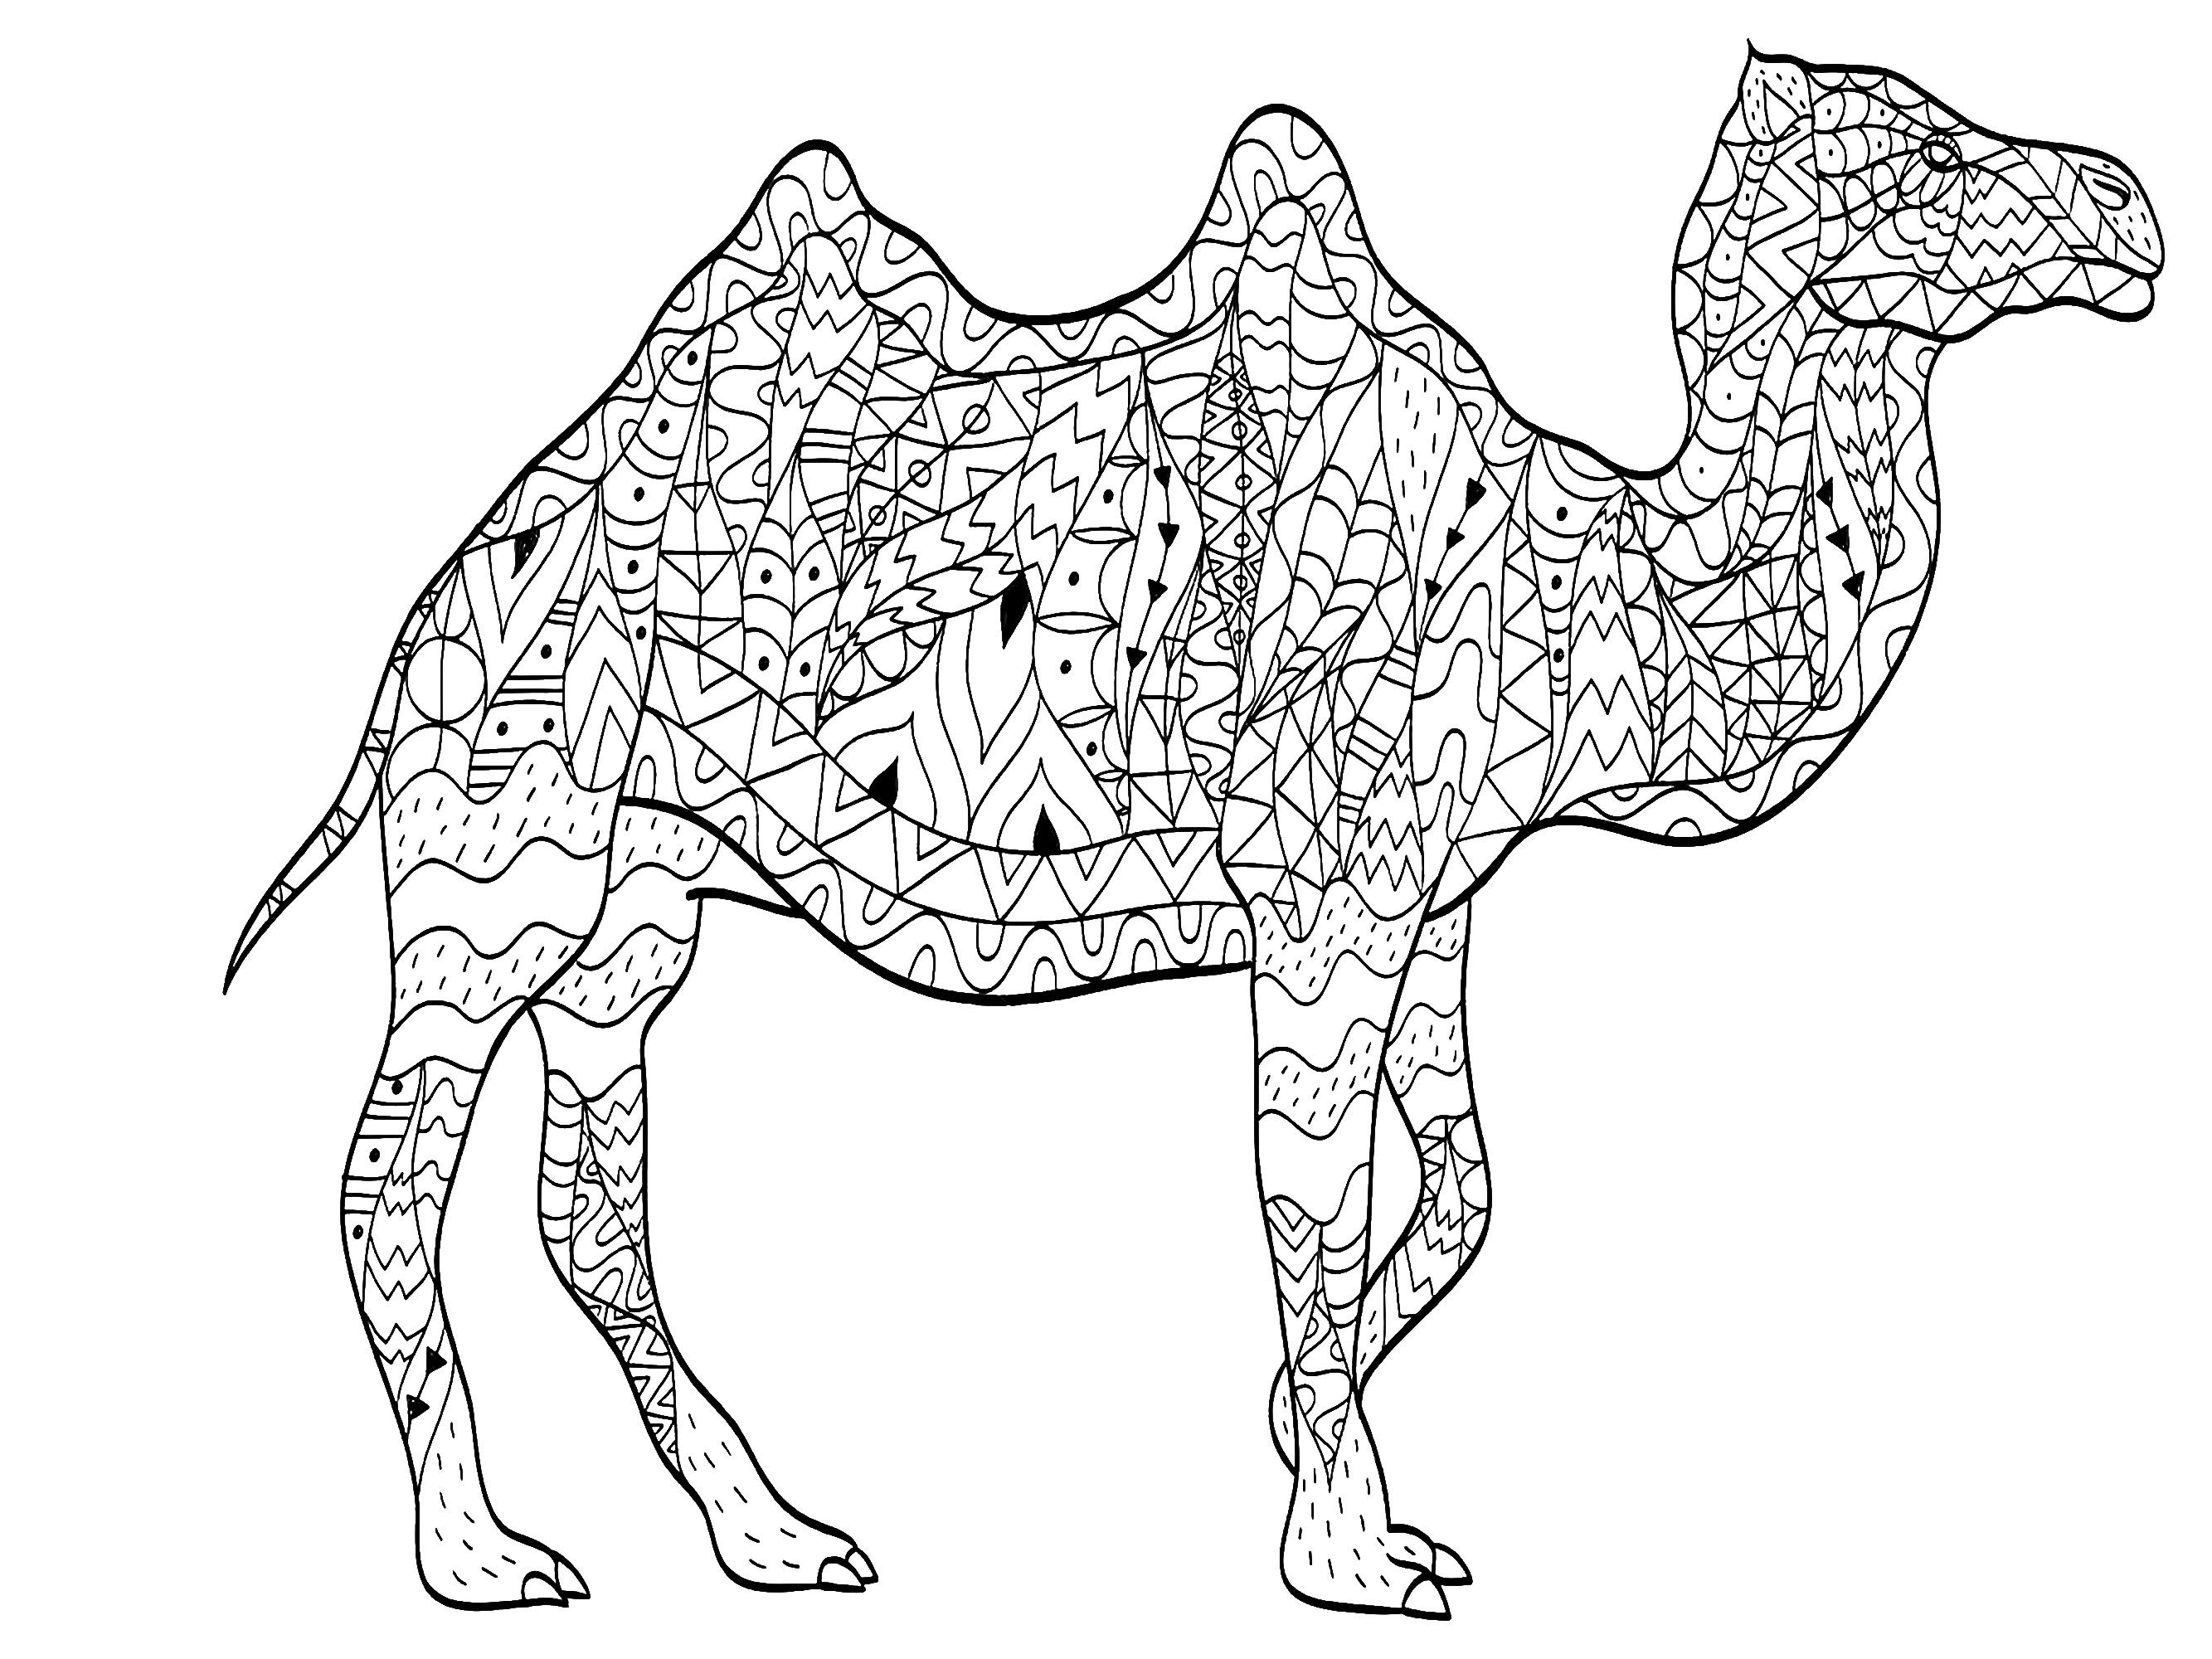 A Majestic Camel Drawn With Varied And Original Patterns